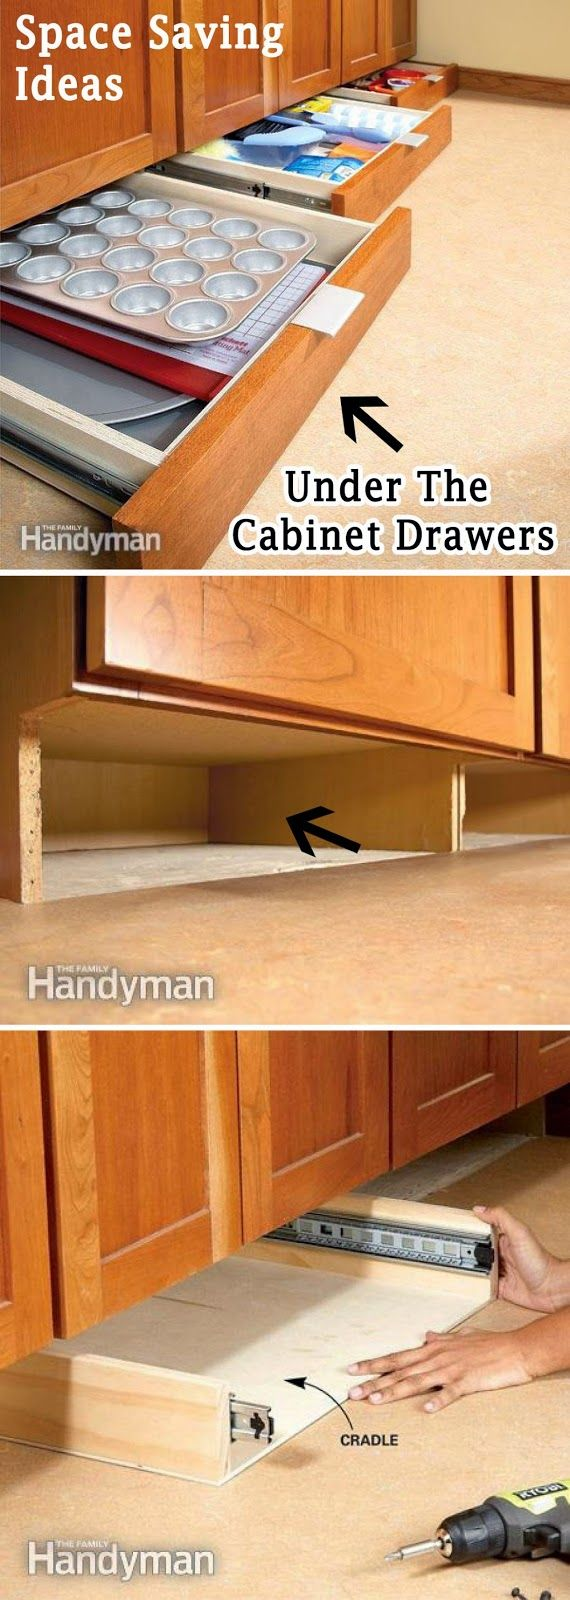 11 Creative And Clever Space Saving Ideas ~~ Easy, Attractive Solutions To  Common Kitchen Organization Problems With Step By Step Instructions And  Pictures